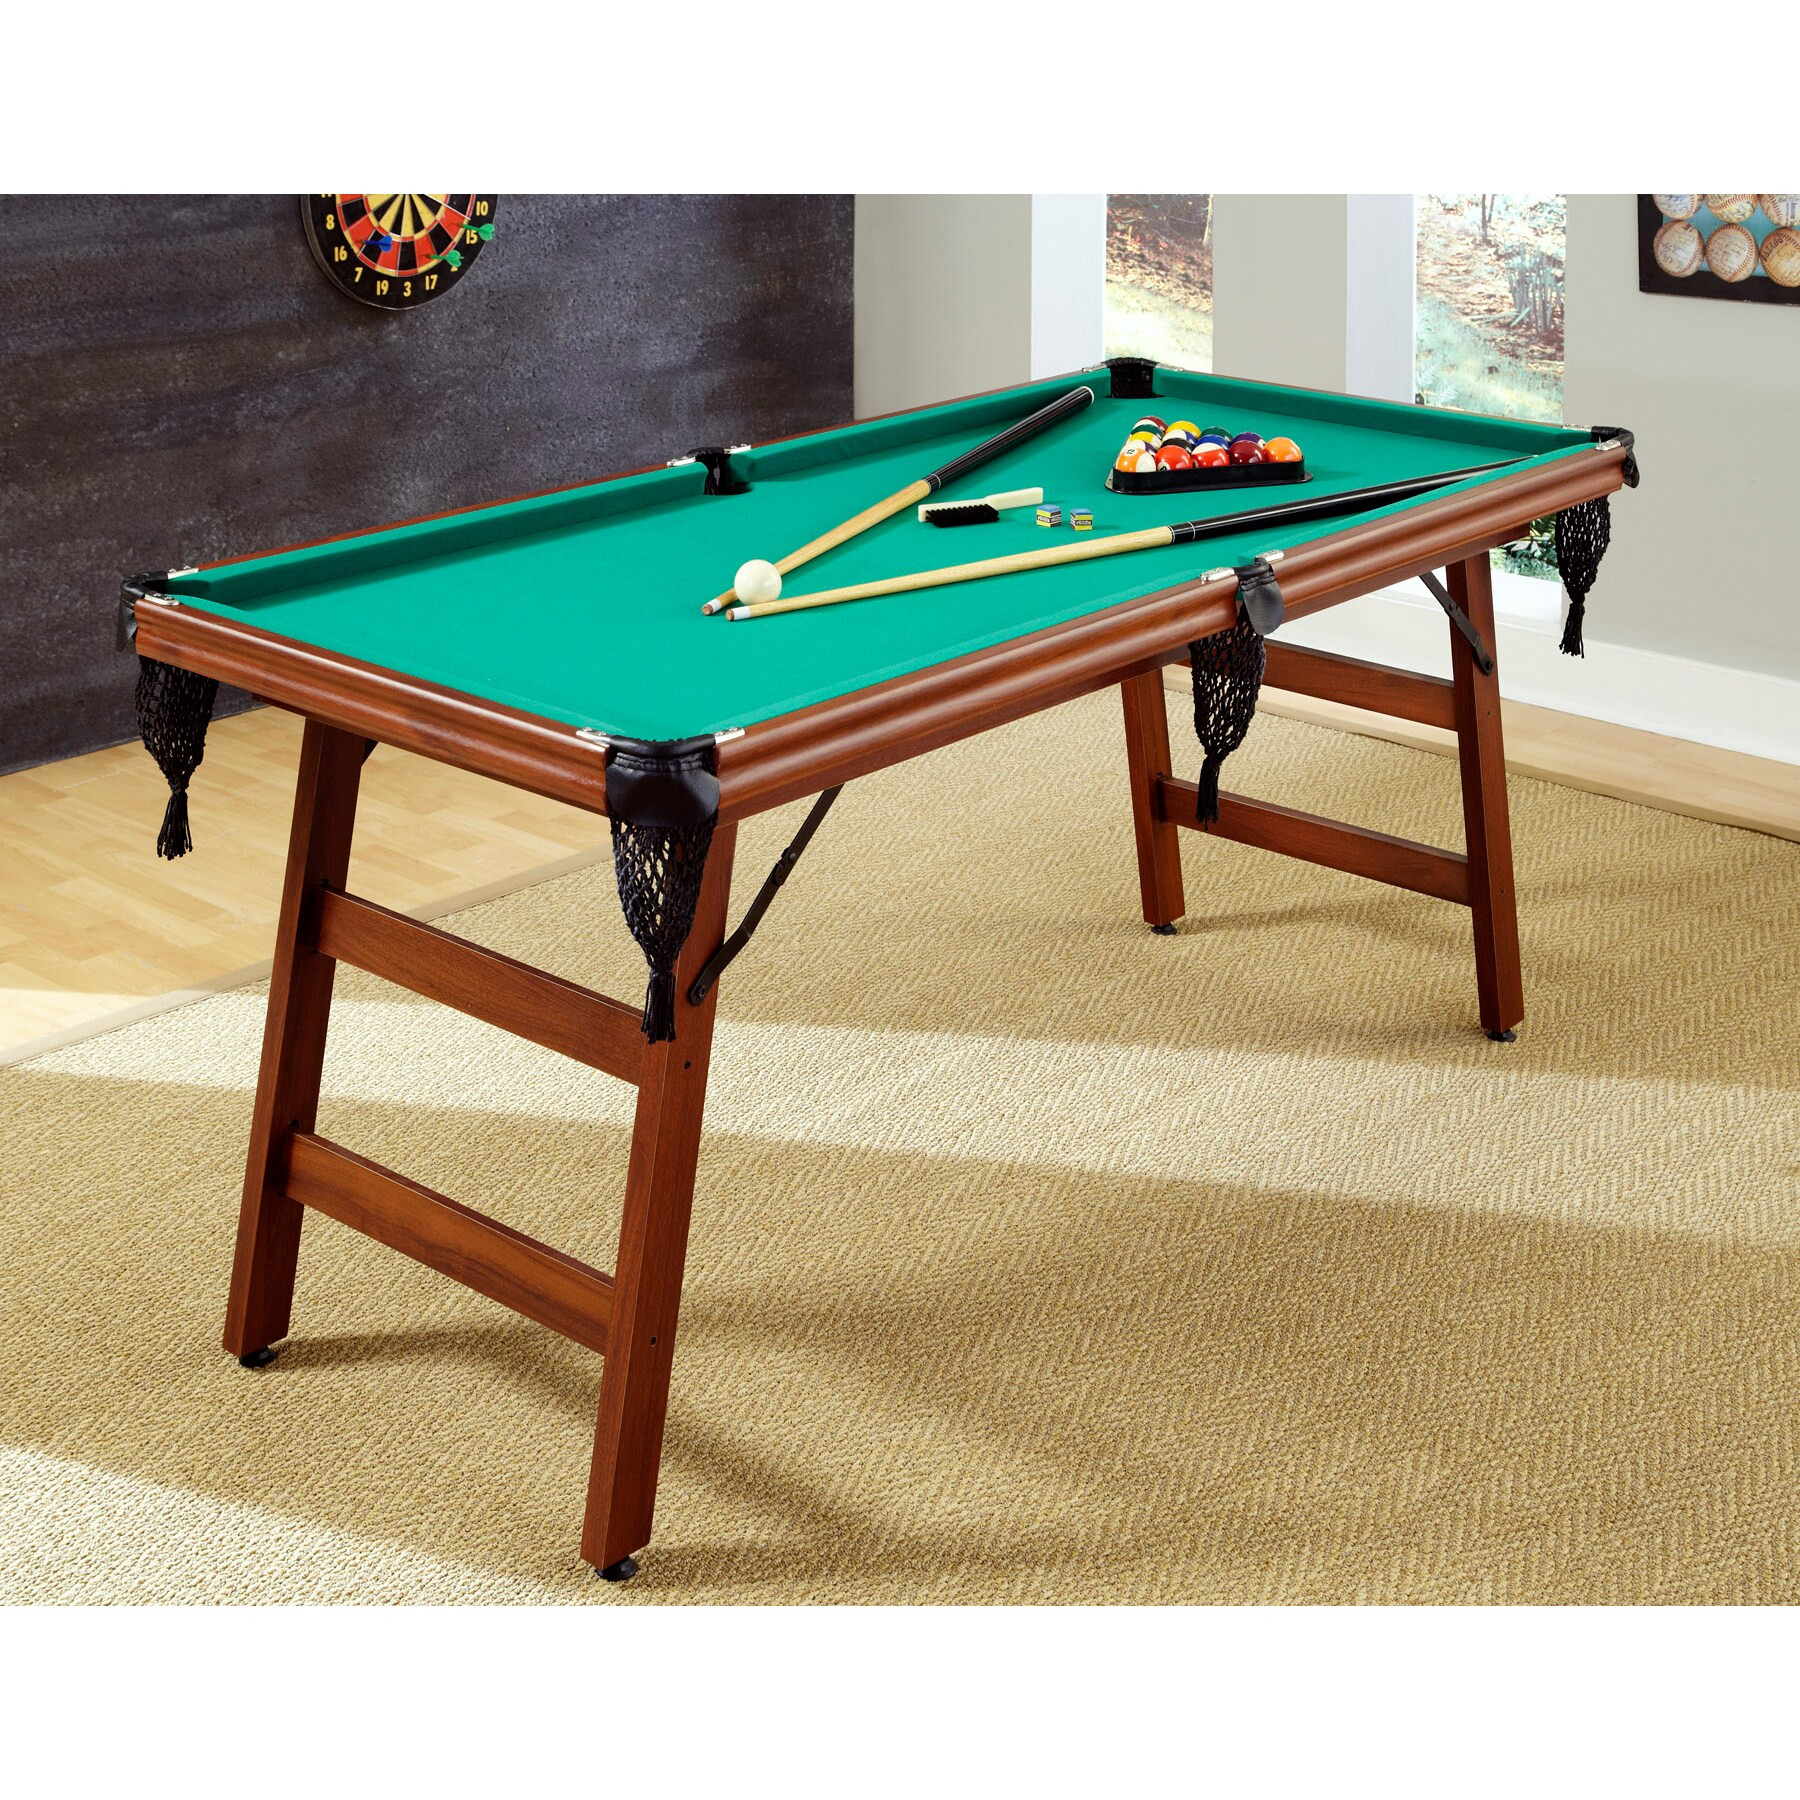 Overstock.com 'The Real Shooter' 6 foot Pool Table at Sears.com